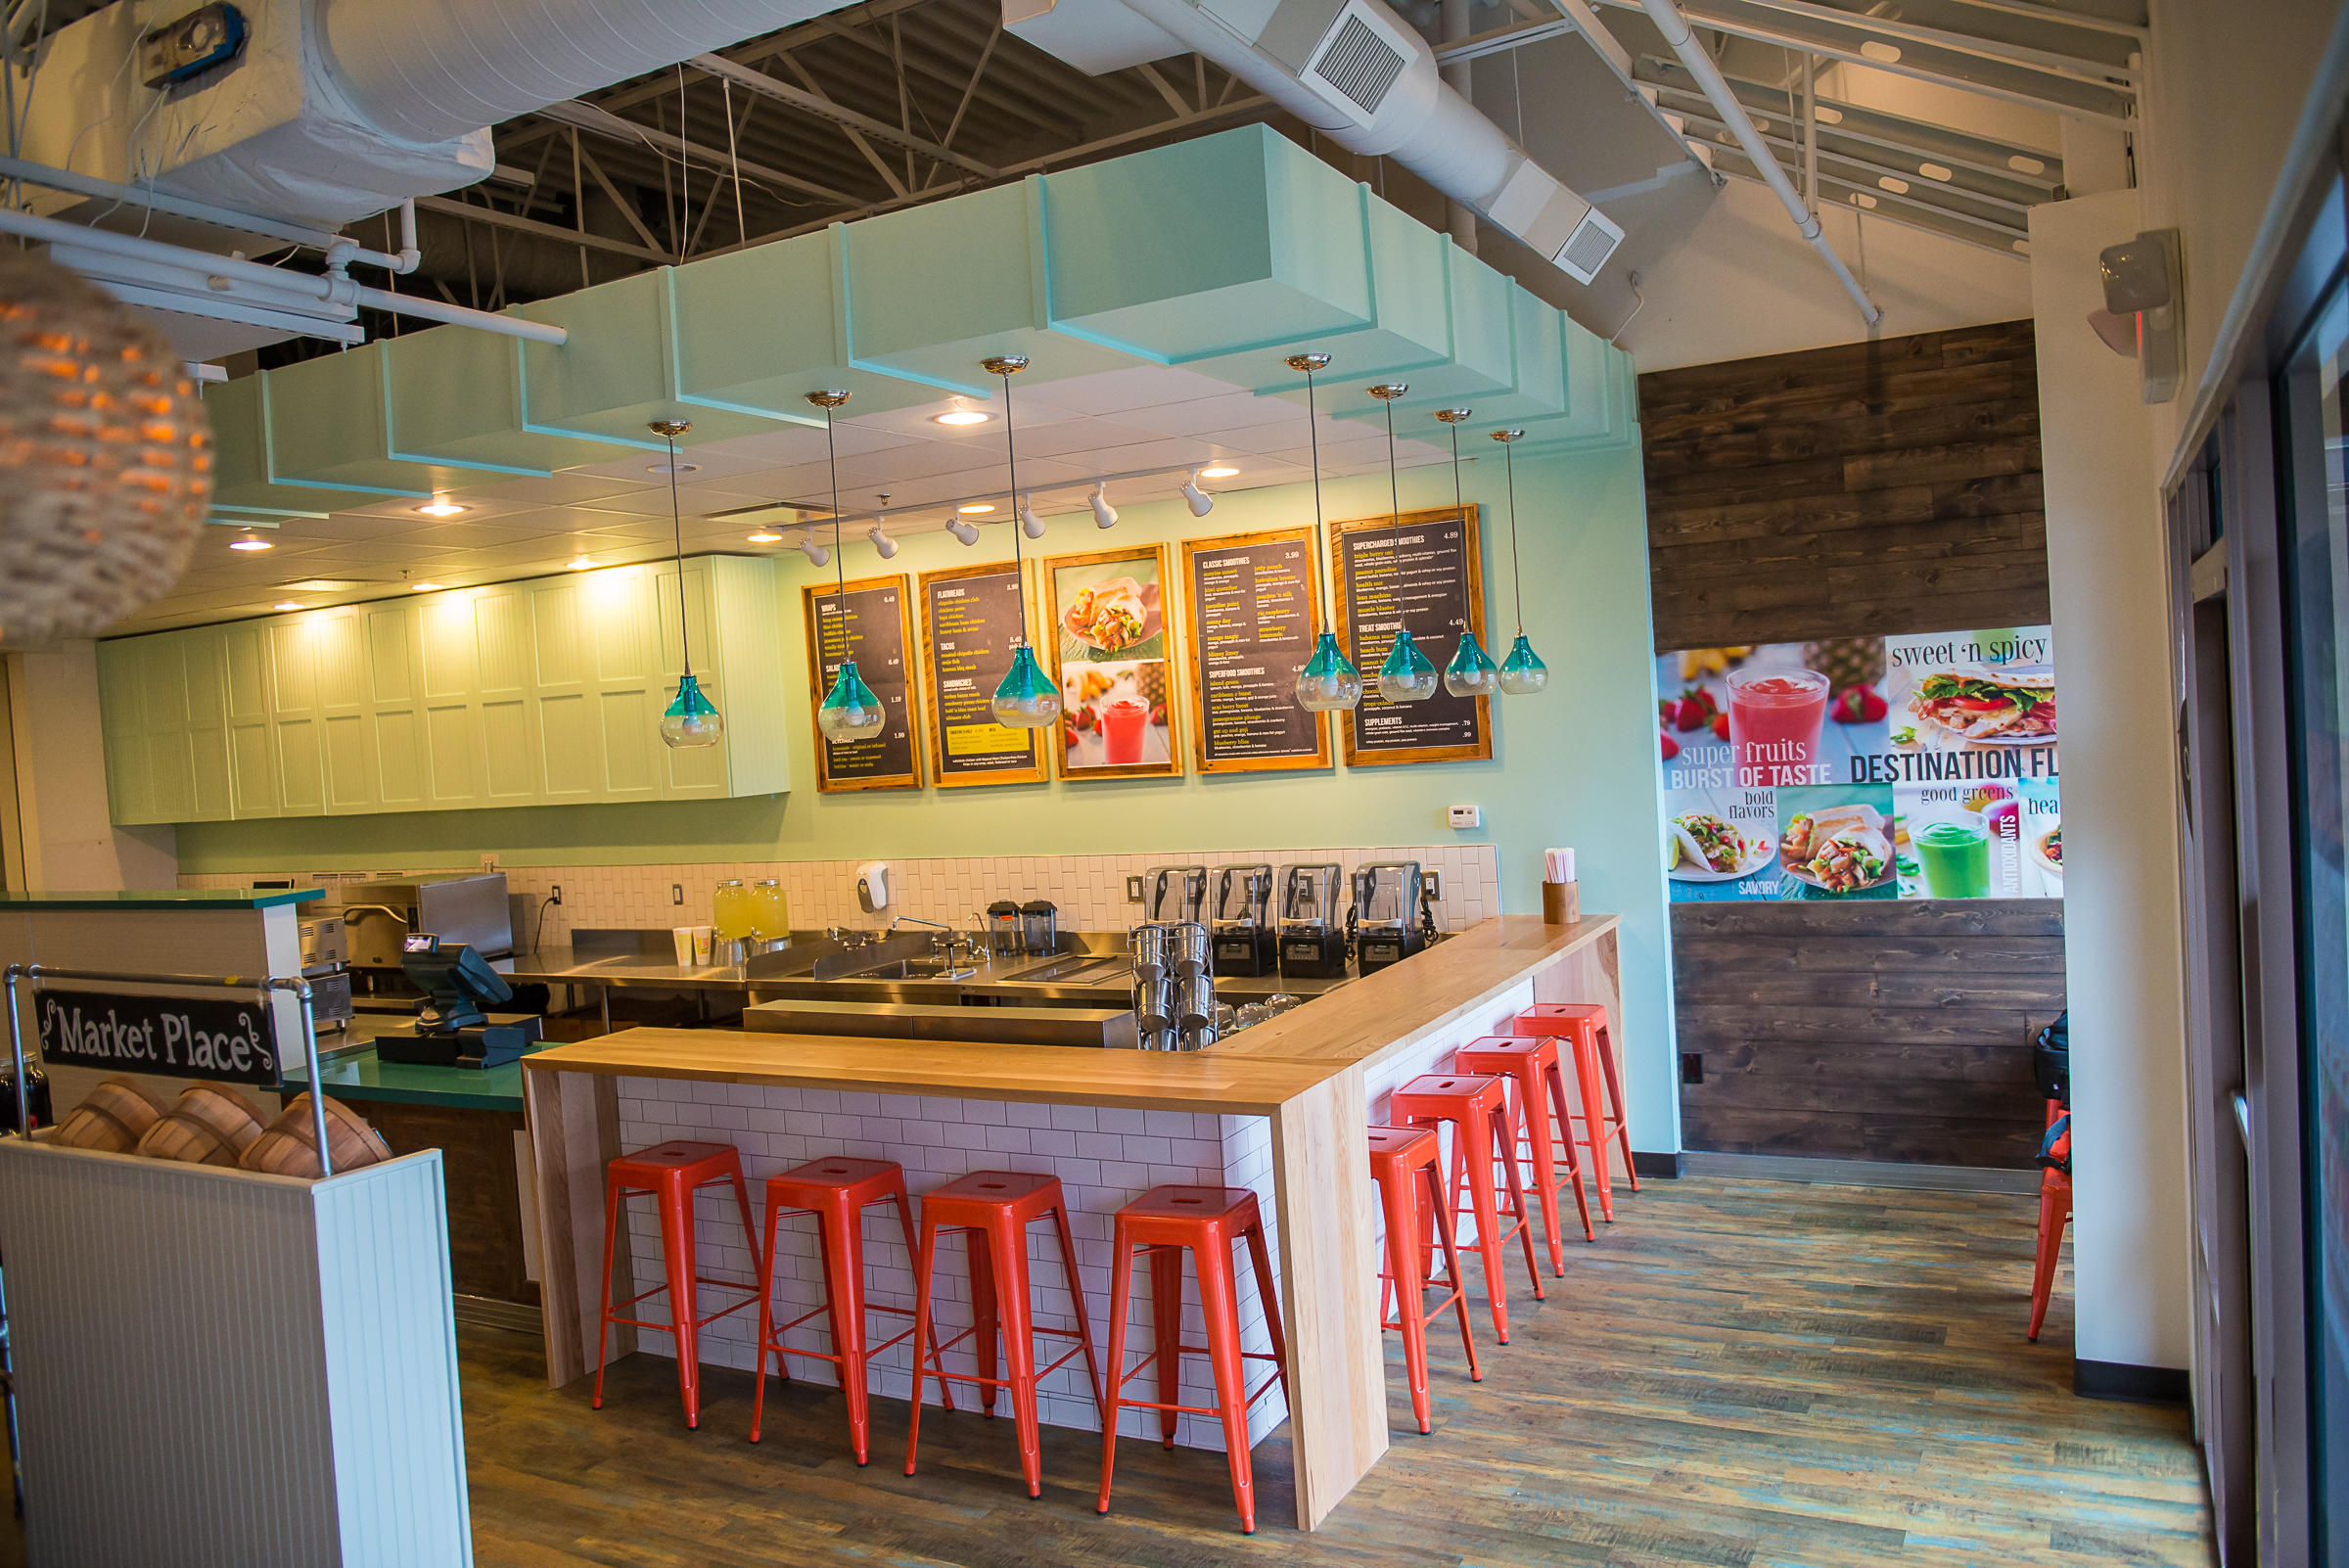 Tropical Smoothie Cafe image 1